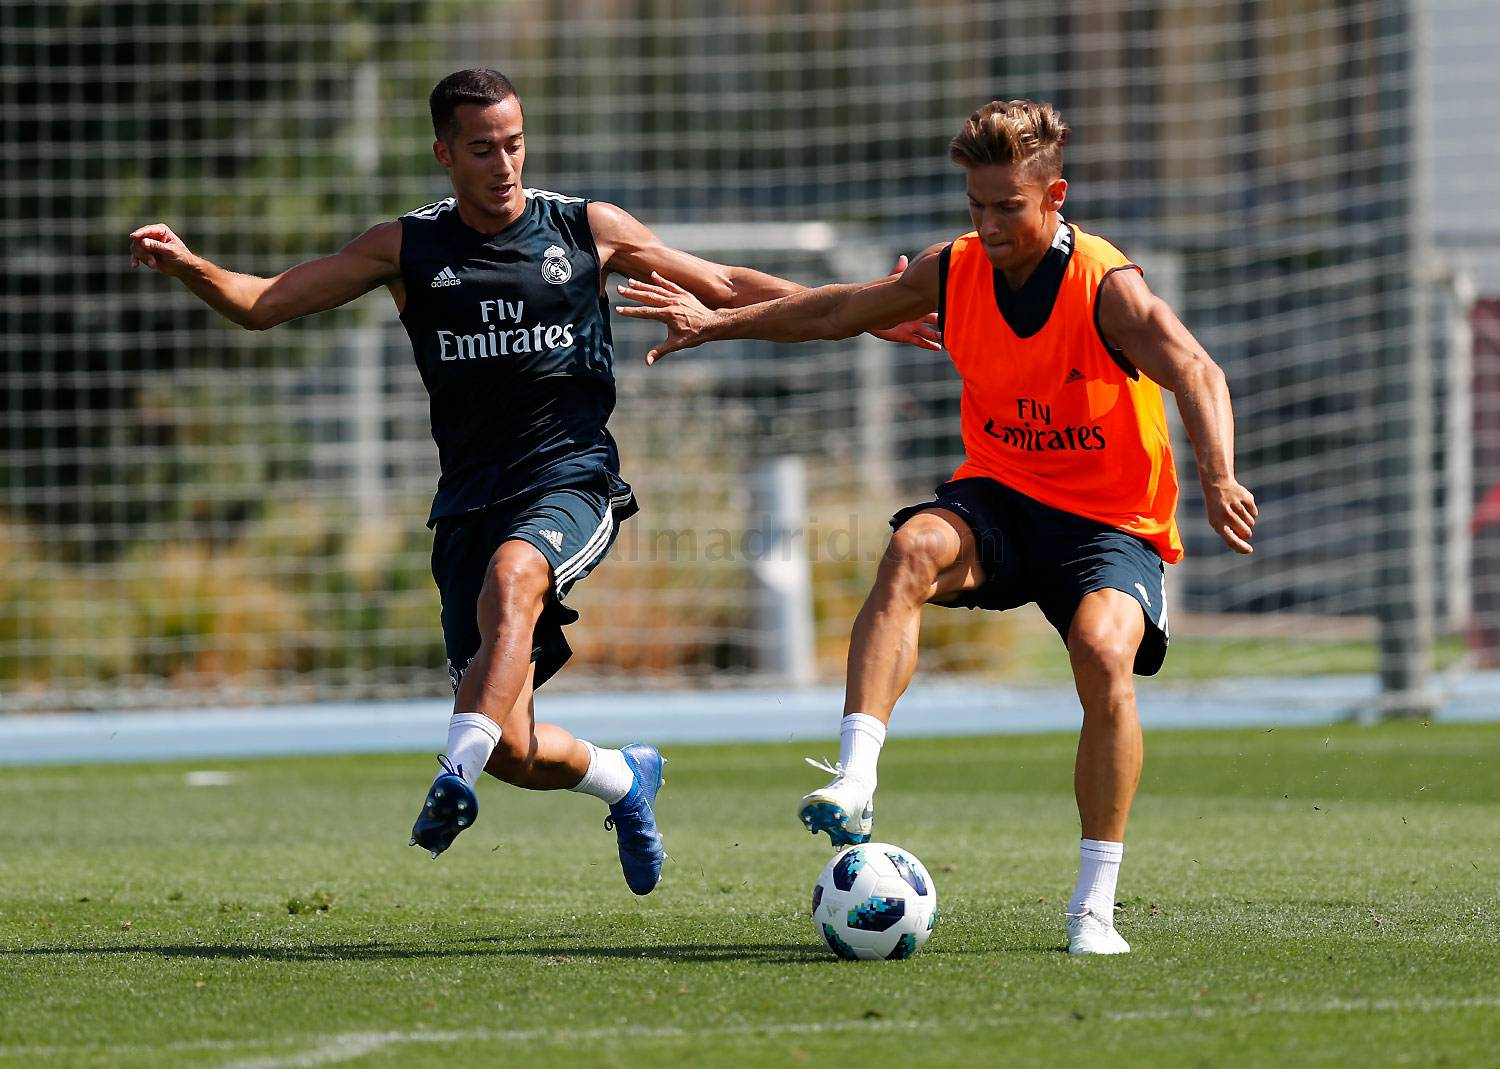 Real Madrid - Entrenamiento del Real Madrid - 12-08-2018